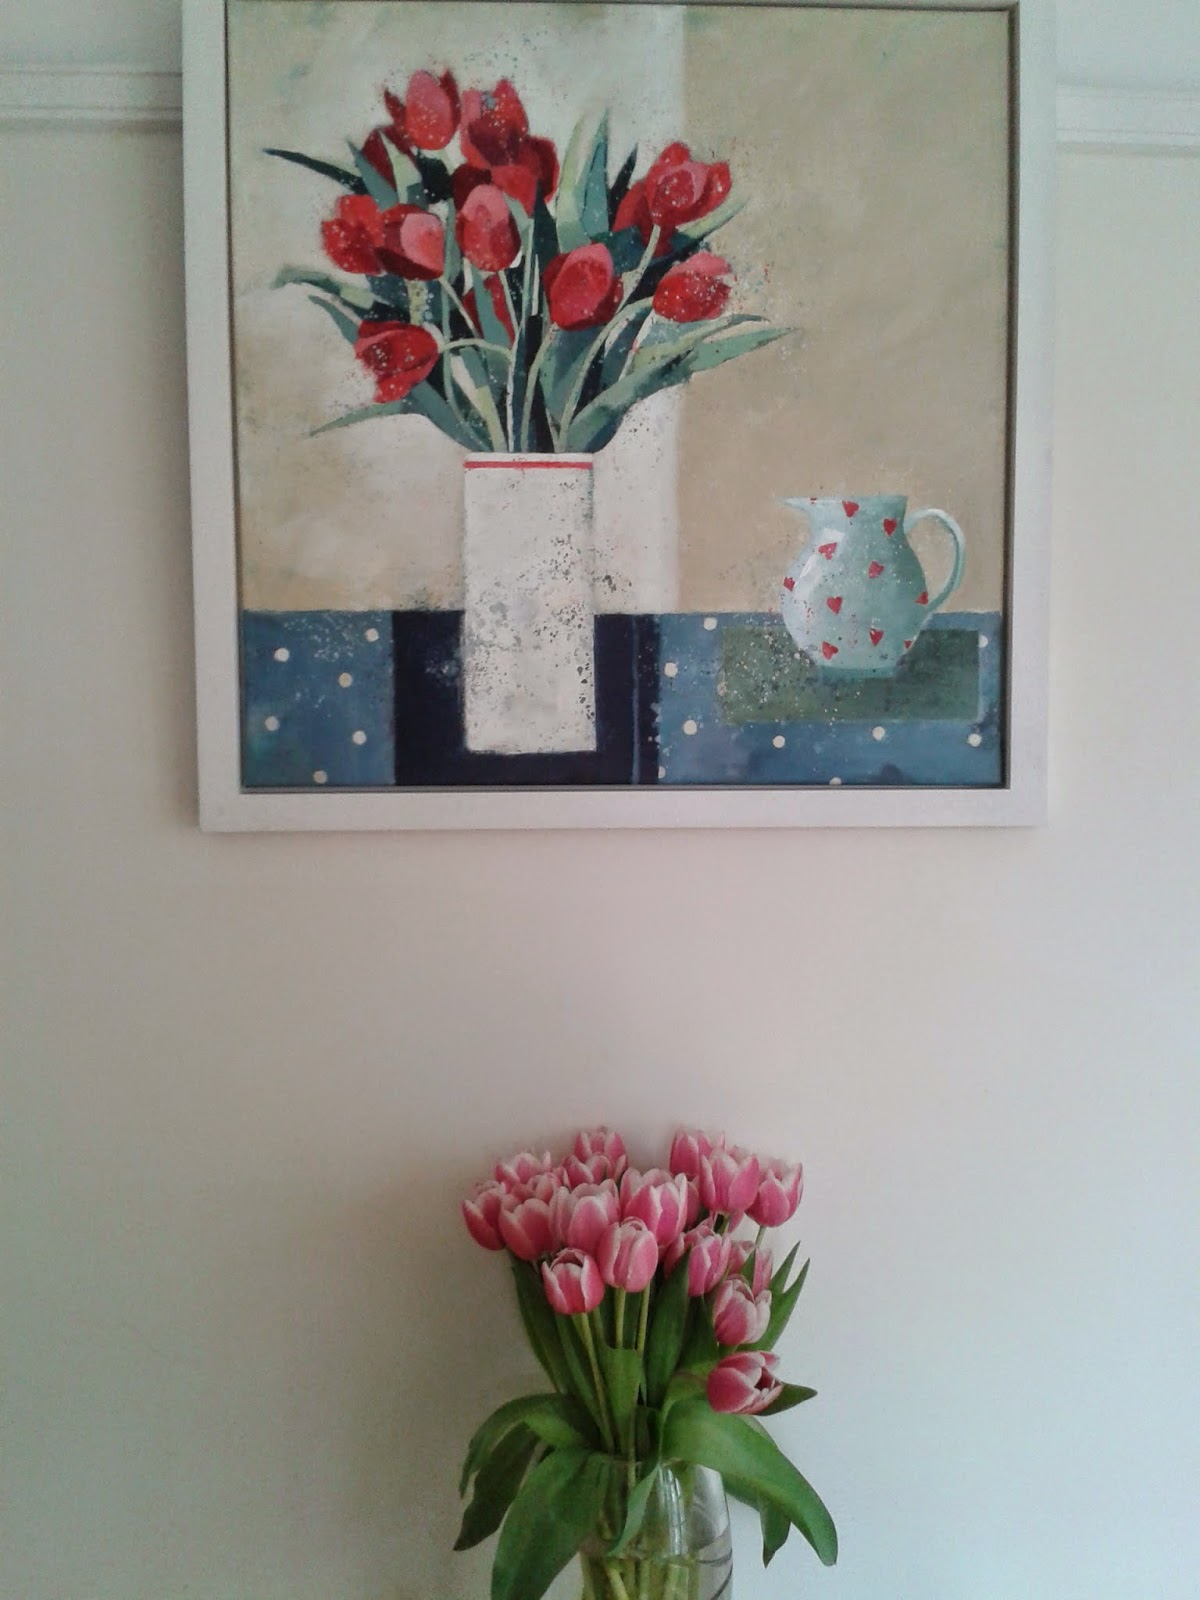 Pink Tulips & Paining of more Tulips